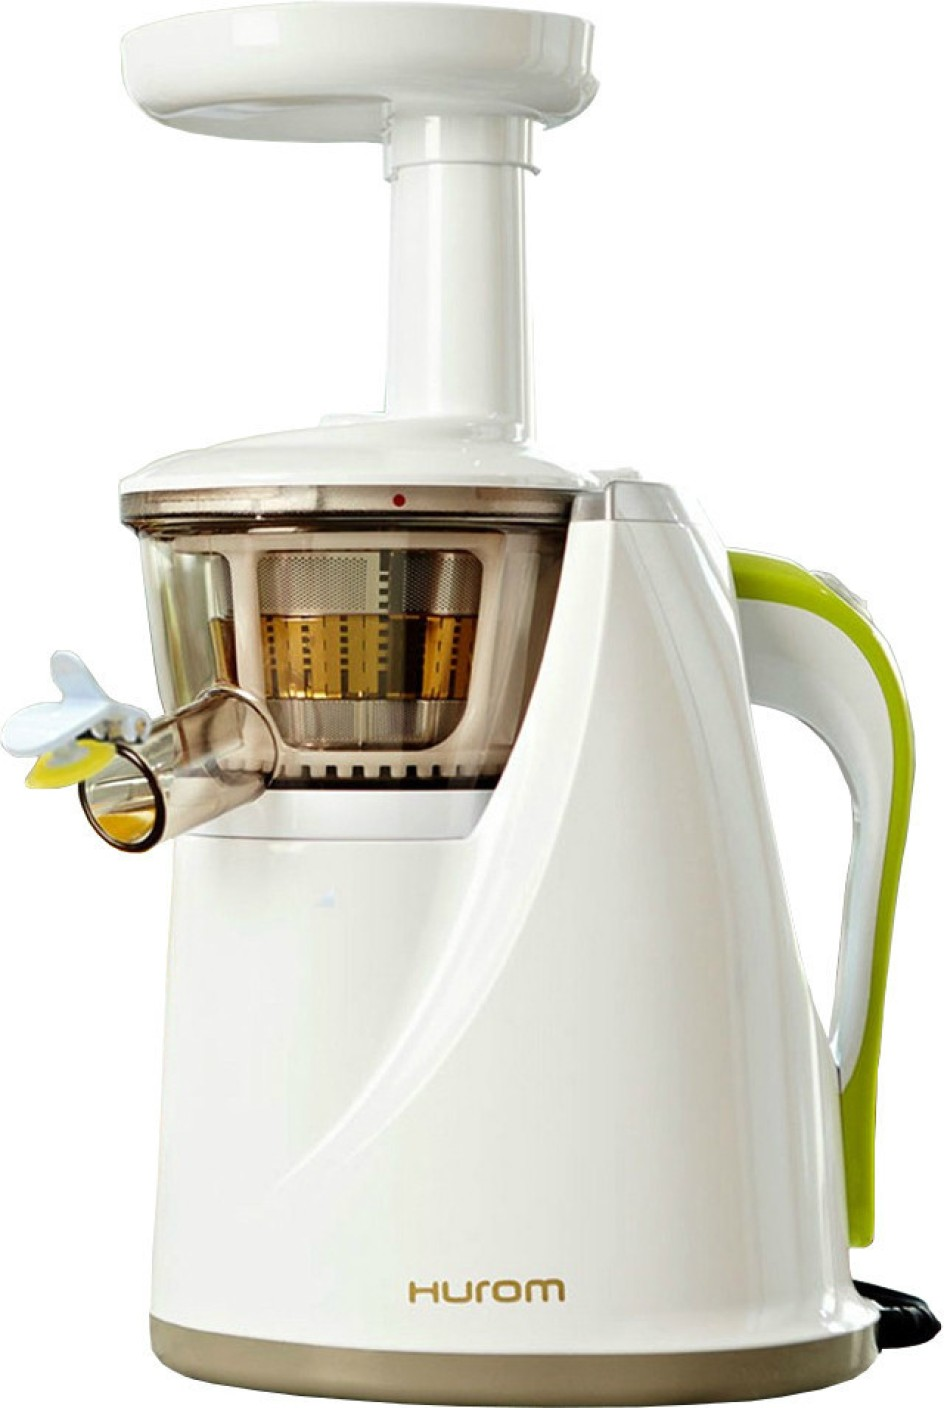 Vonshef Slow Juicer Horizontal Masticating Juice Extractor Wheatgrass Fruit : Wheatgrass Juicer In India. Juicepresso Cold Press Juicer ...